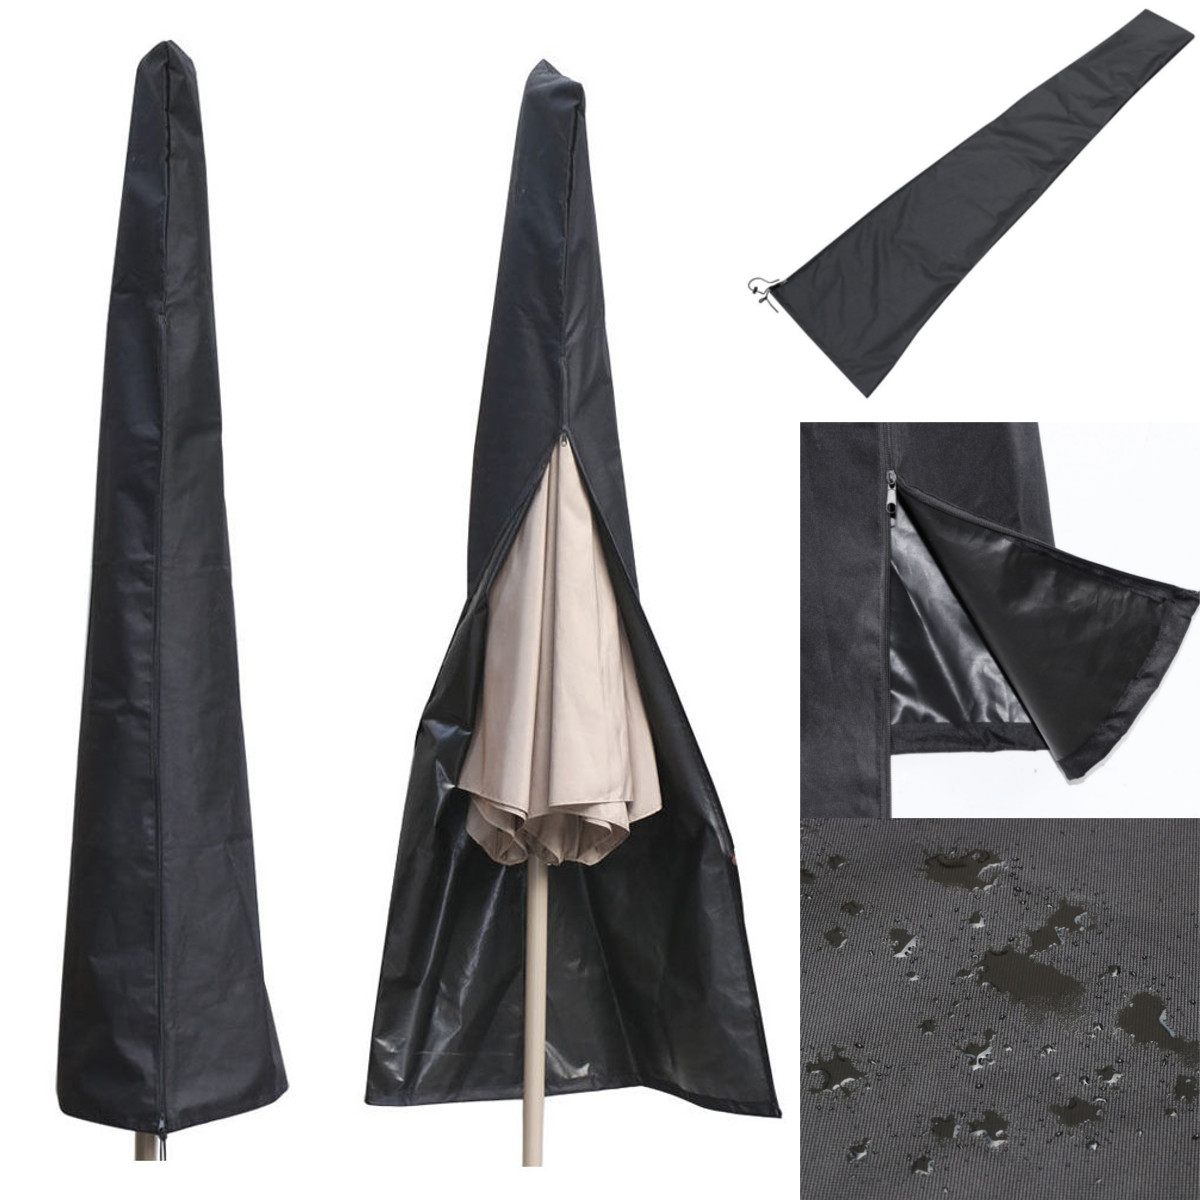 Waterproof Patio Outdoor Umbrella Protective Canopy Cover Bag fit 6ft to 11ft  sc 1 st  Walmart & Waterproof Patio Outdoor Umbrella Protective Canopy Cover Bag fit ...